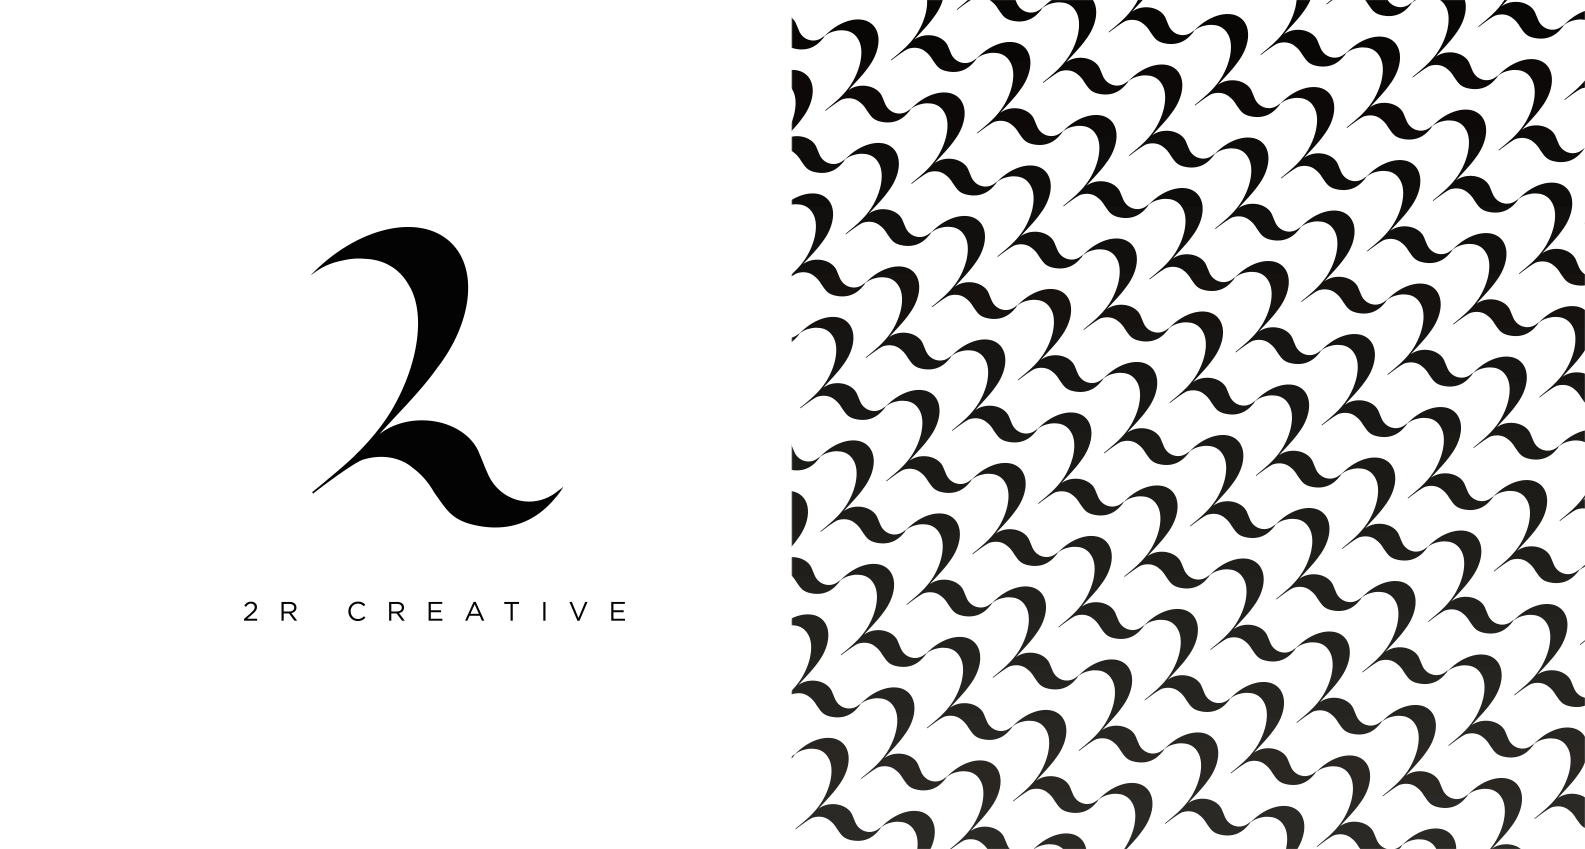 2R logo design and pattern by Jacober Creative